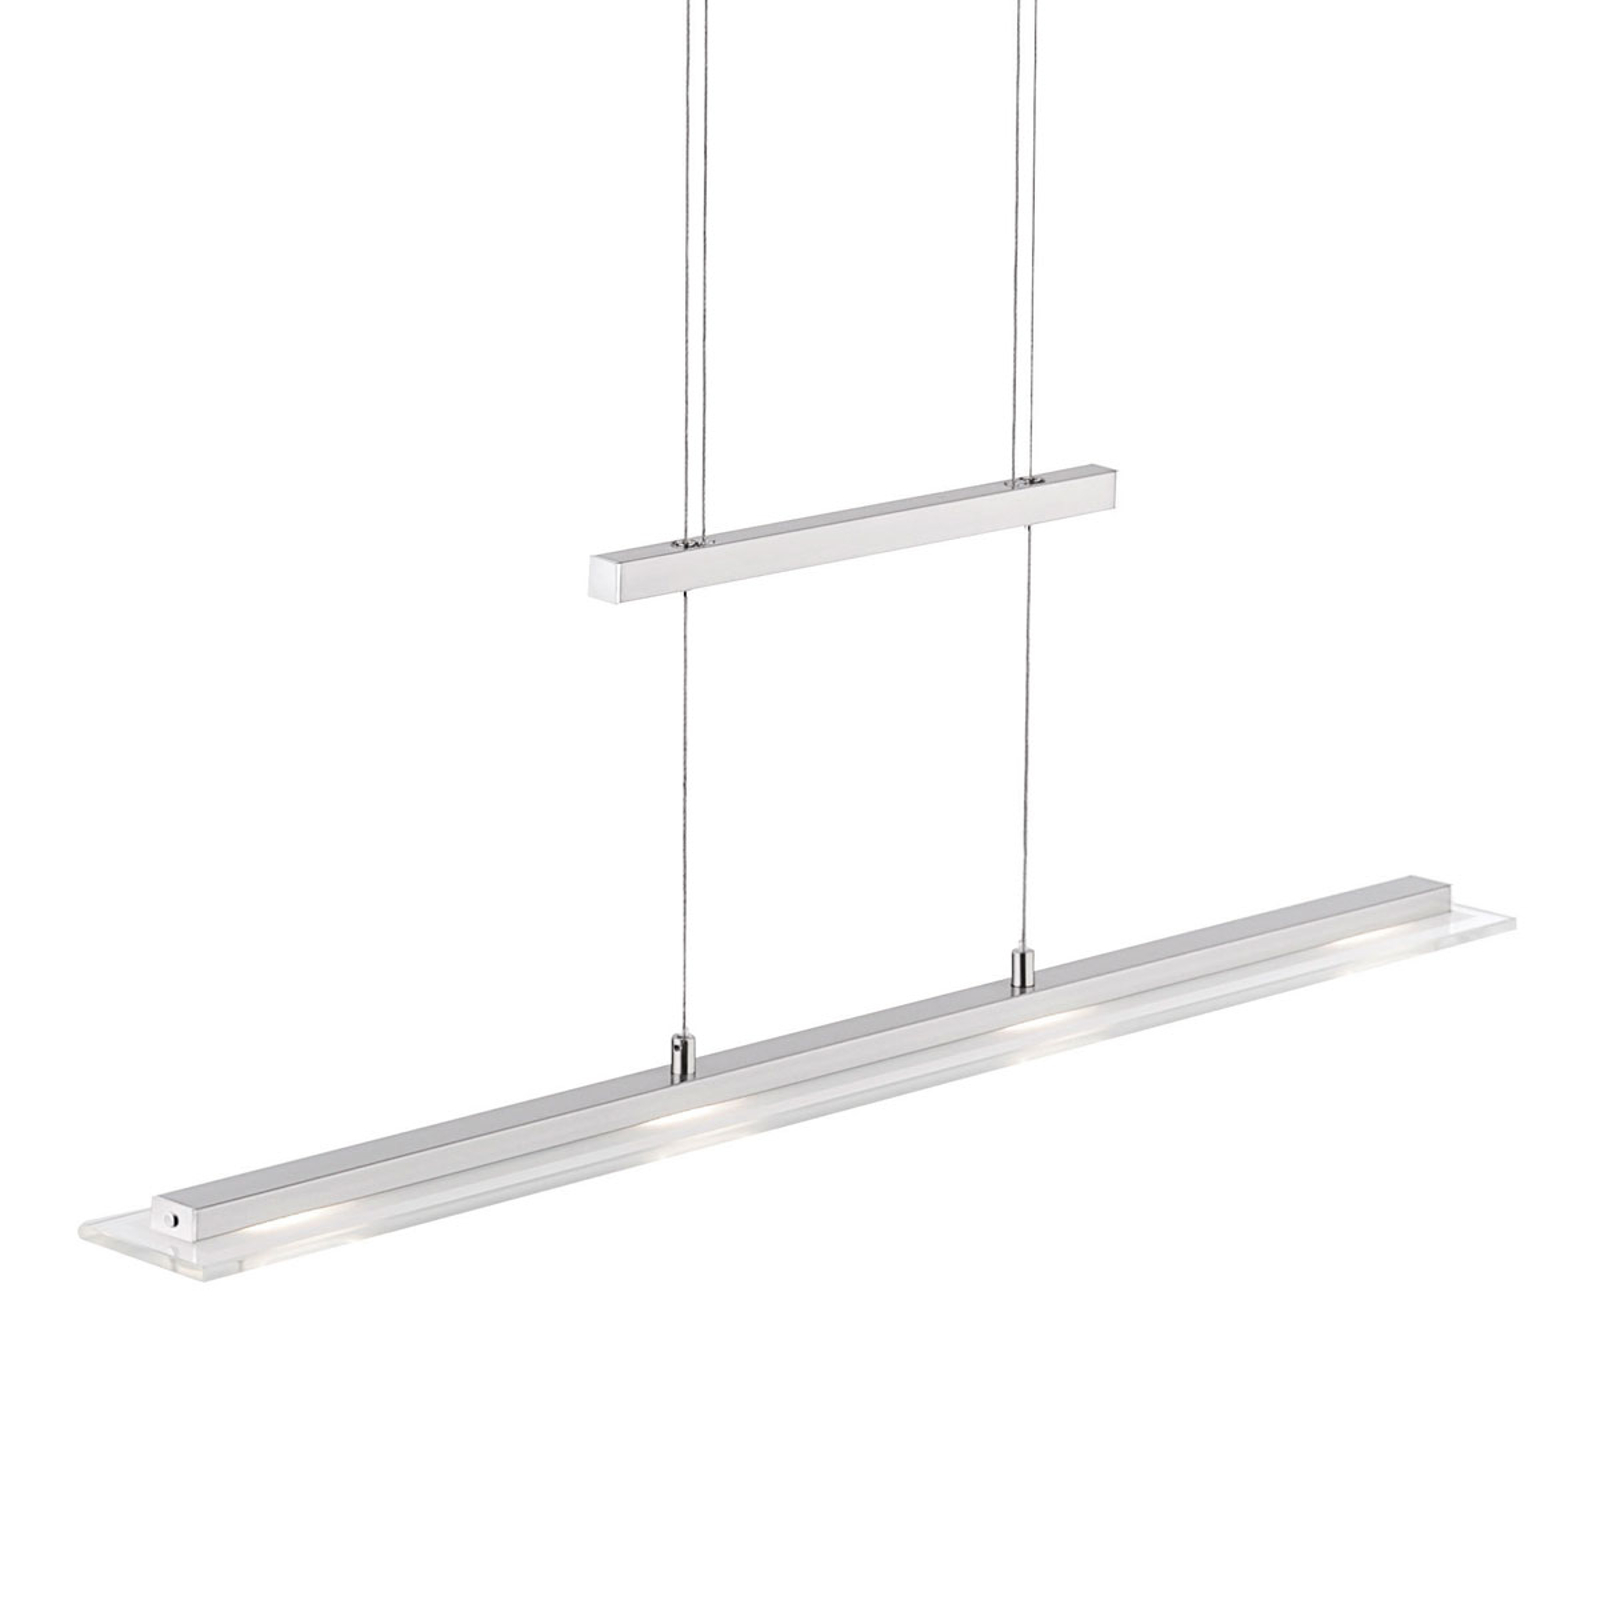 LED hanglamp Tenso tunable white + dimmer 64cm